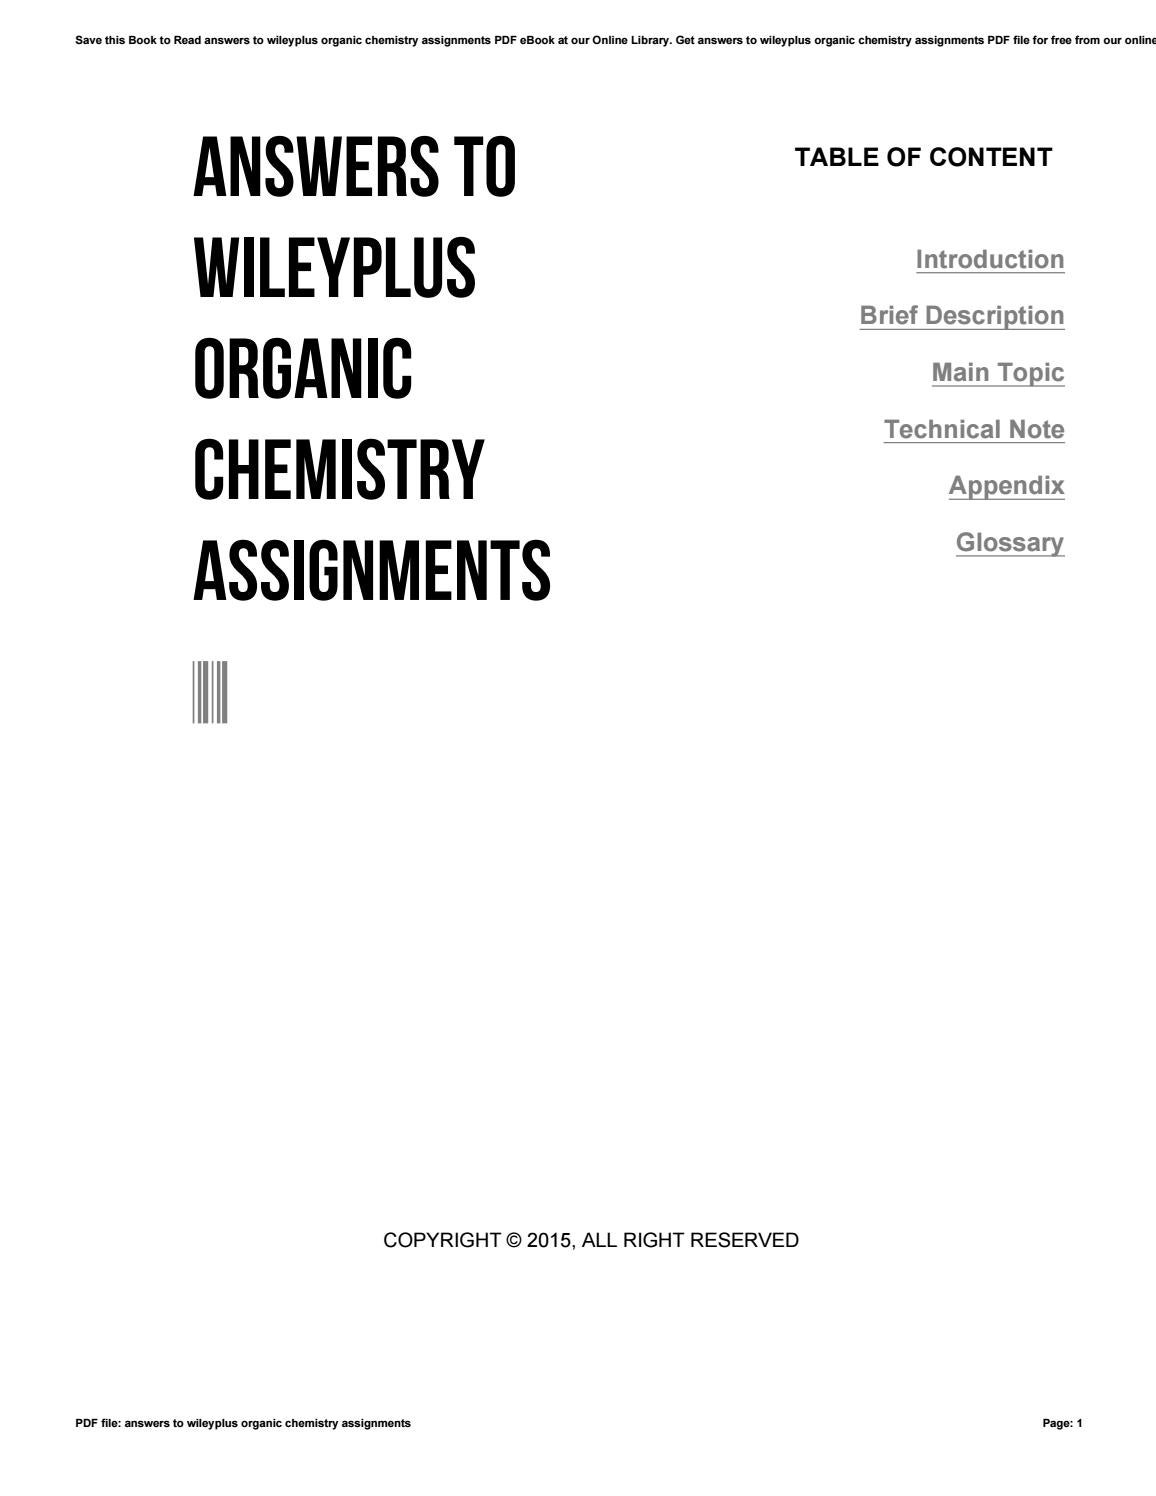 Answers to wileyplus organic chemistry assignments by